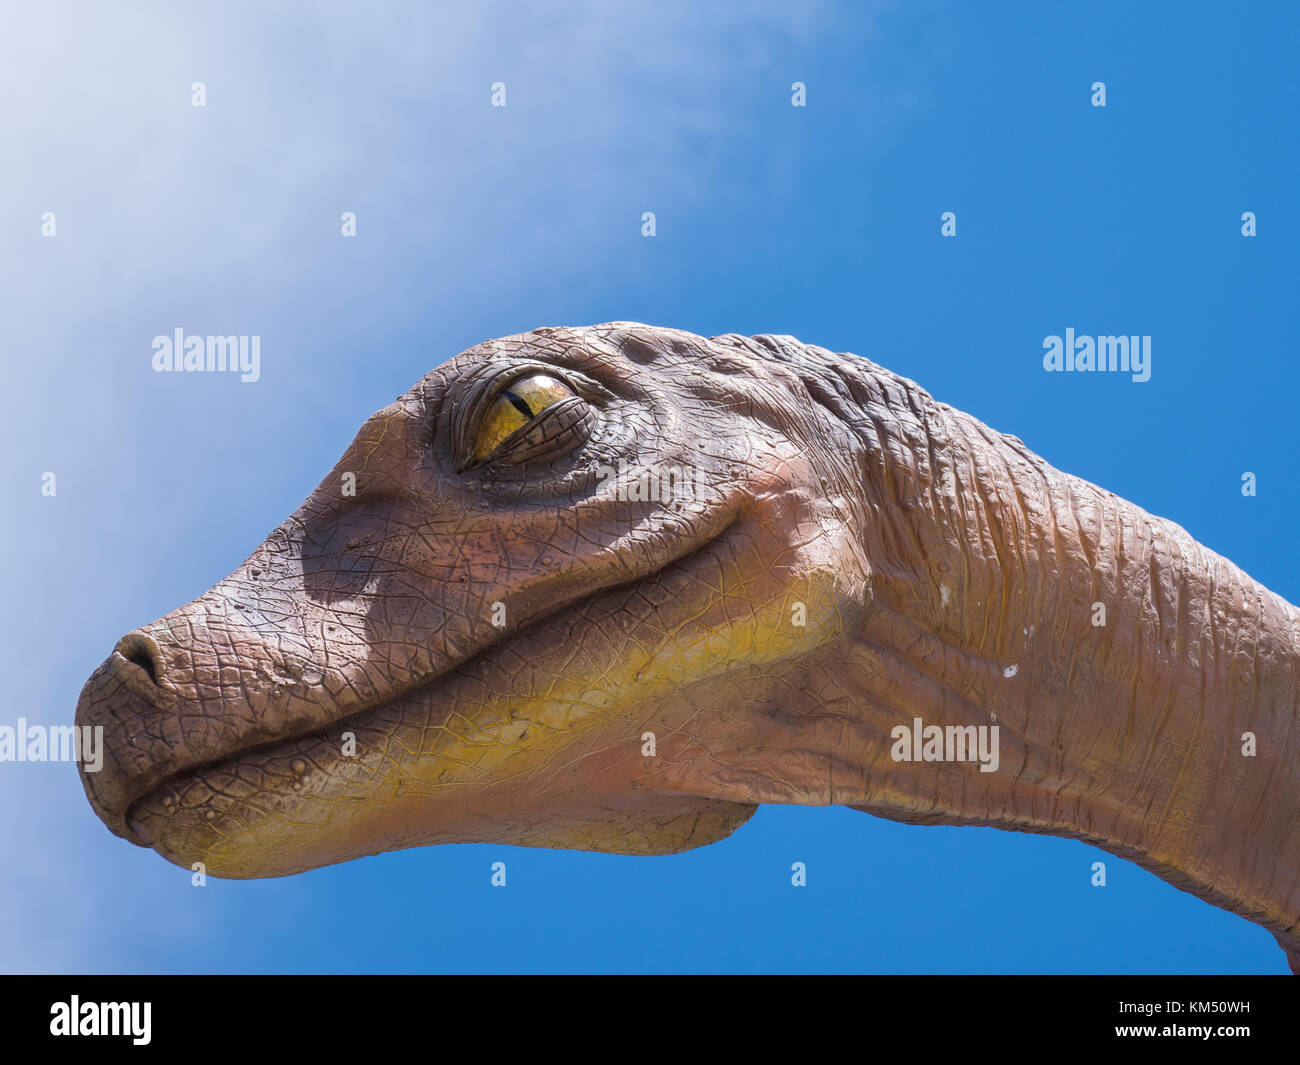 Dinosaur replica near the visitor center, Dinosaur Provincial Park, Alberta, Canada. - Stock Image